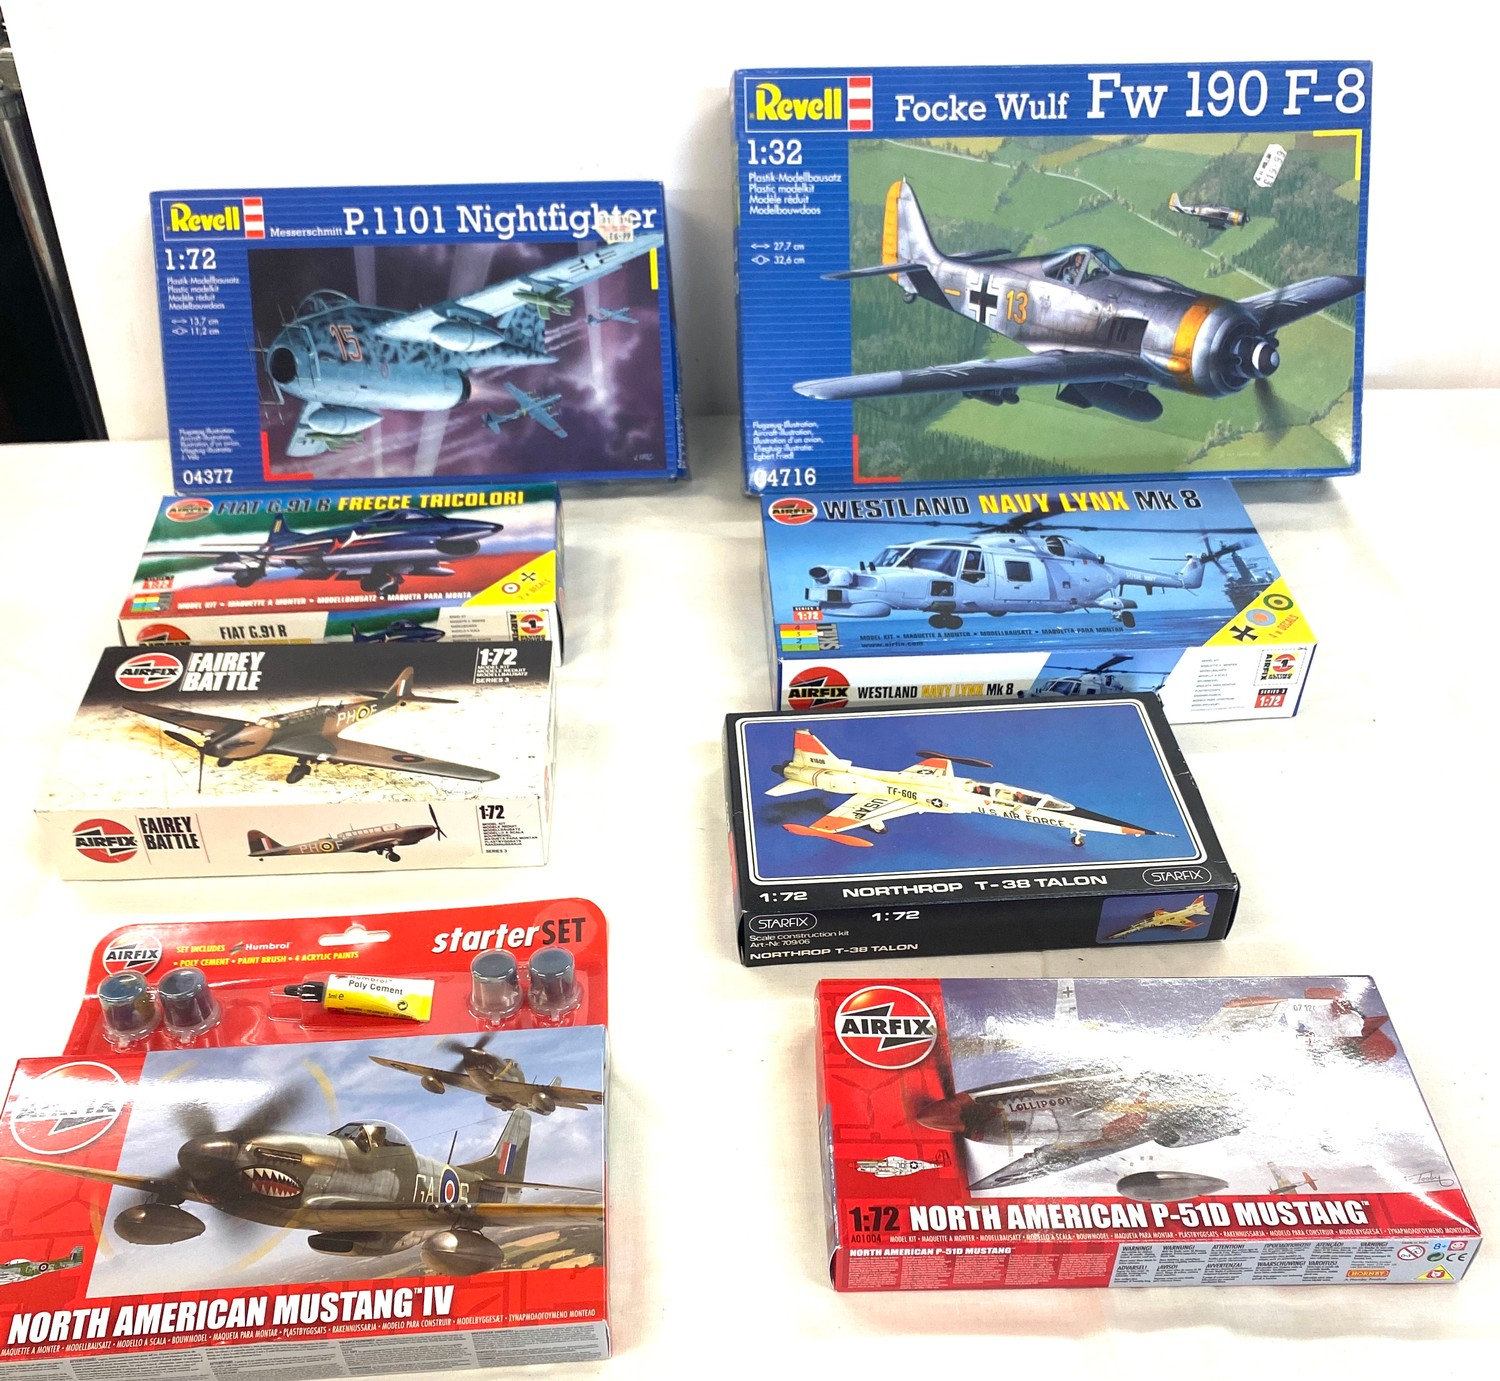 Selection of 8 boxed airfix models to include, Revell, P.1101 nightfighter, Focke Wulf FW 190,